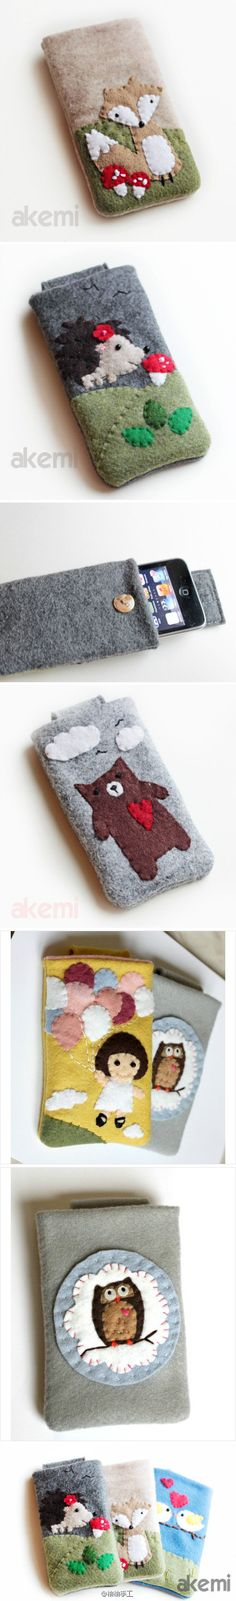 Cute felt patch iphone sets - would make cute eyeglass cases; size might need to be adjusted Pochette Portable, Diy Pochette, Fabric Crafts, Sewing Crafts, Sewing Projects, Felt Case, Felt Embroidery, Wool Applique, Felt Fabric